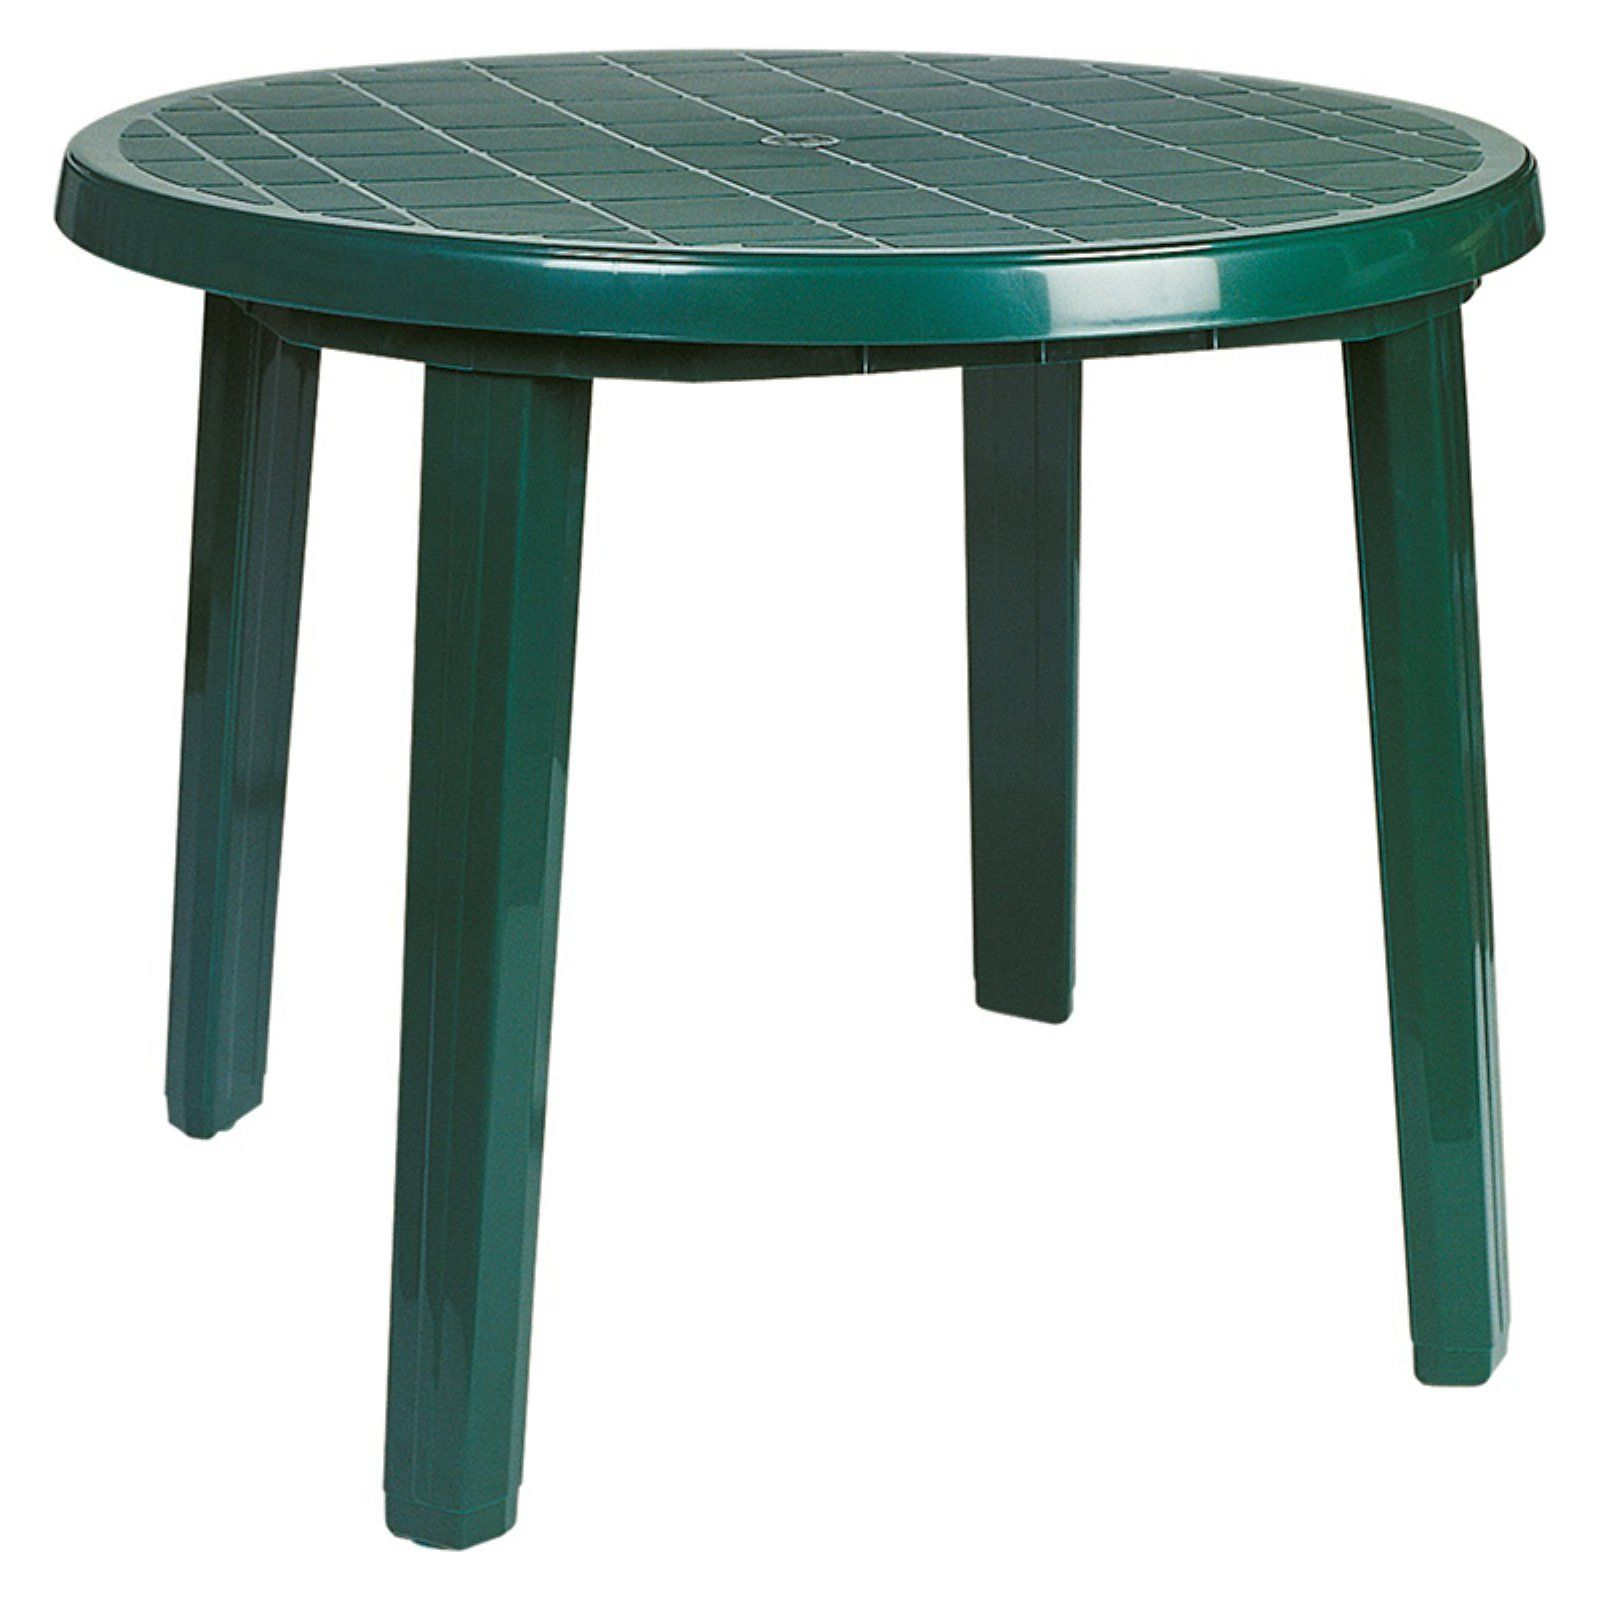 Outdoor Compamia Ronda Resin 35 5 In Round Patio Dining Table